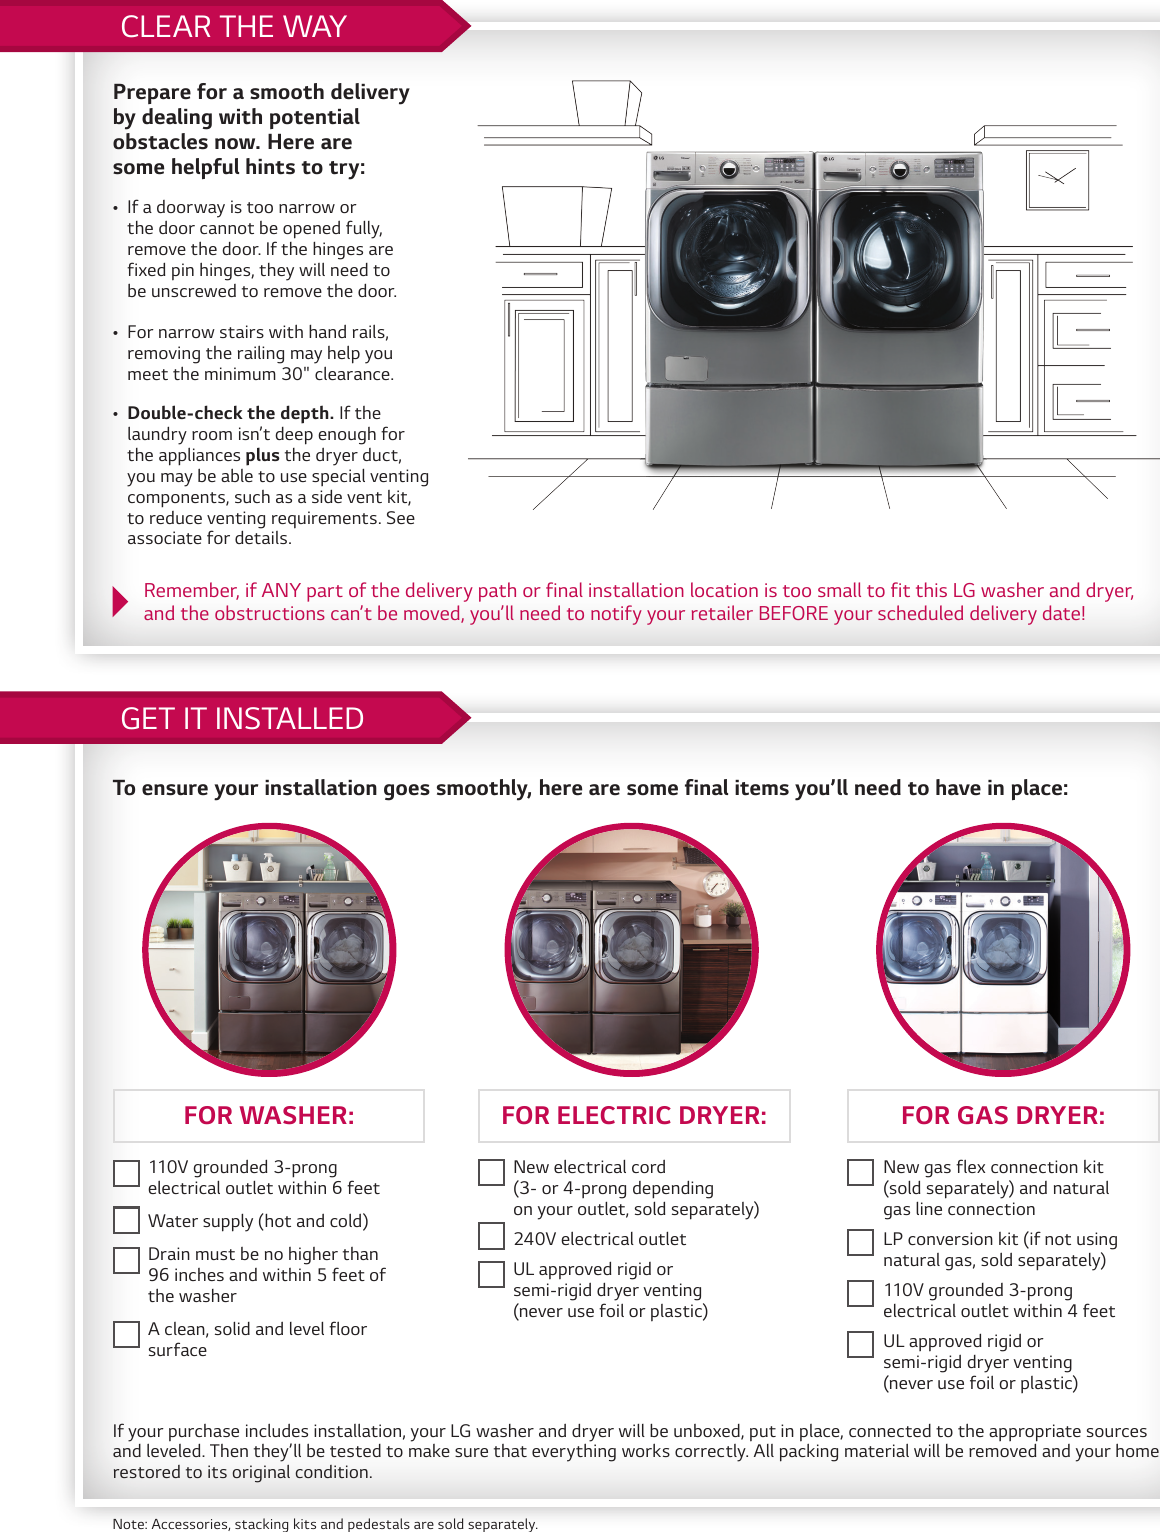 LG WM3050CW User Manual Measure First Laundry Installation